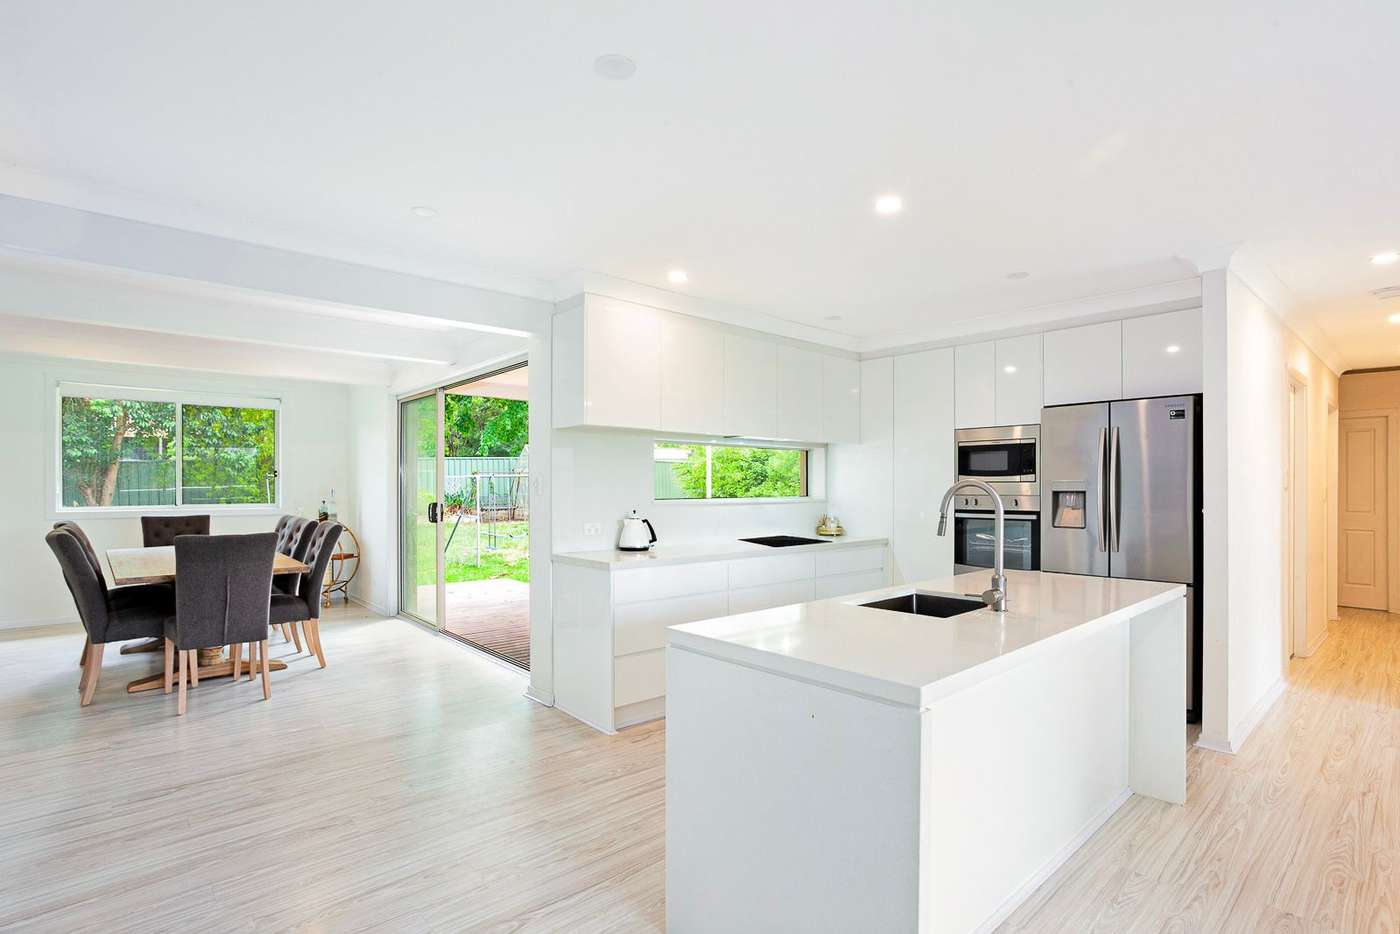 Main view of Homely house listing, 4 Park Road, Baulkham Hills NSW 2153